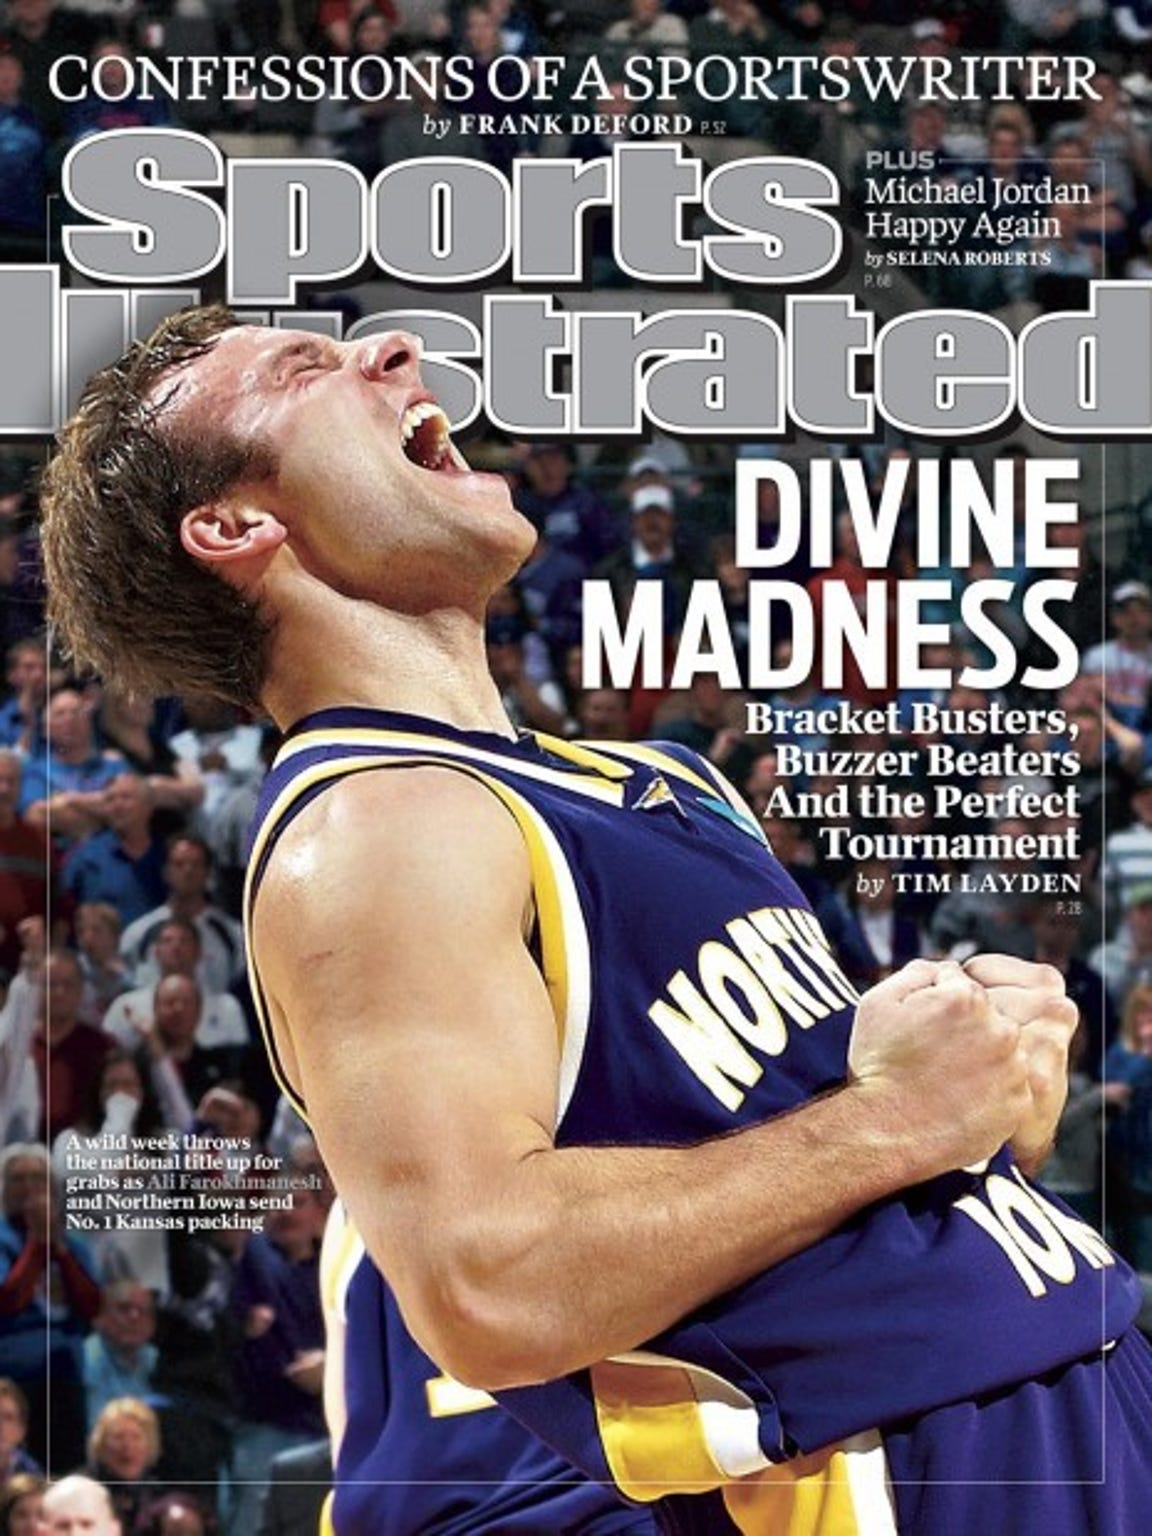 Ali Farokhmanesh was on the Sports Illustrated cover